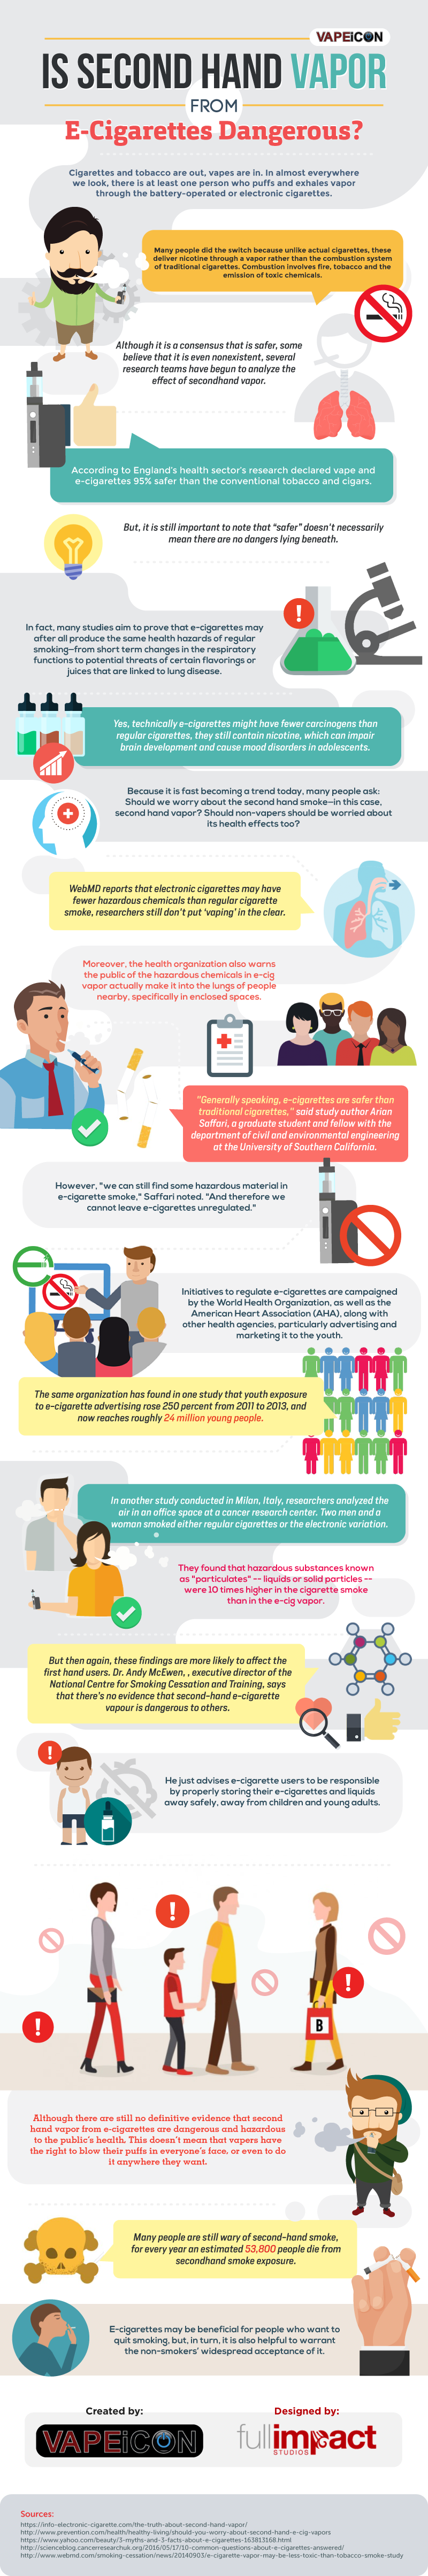 Are E-Cigarettes Really As Safe As You Think They Are - Infographic